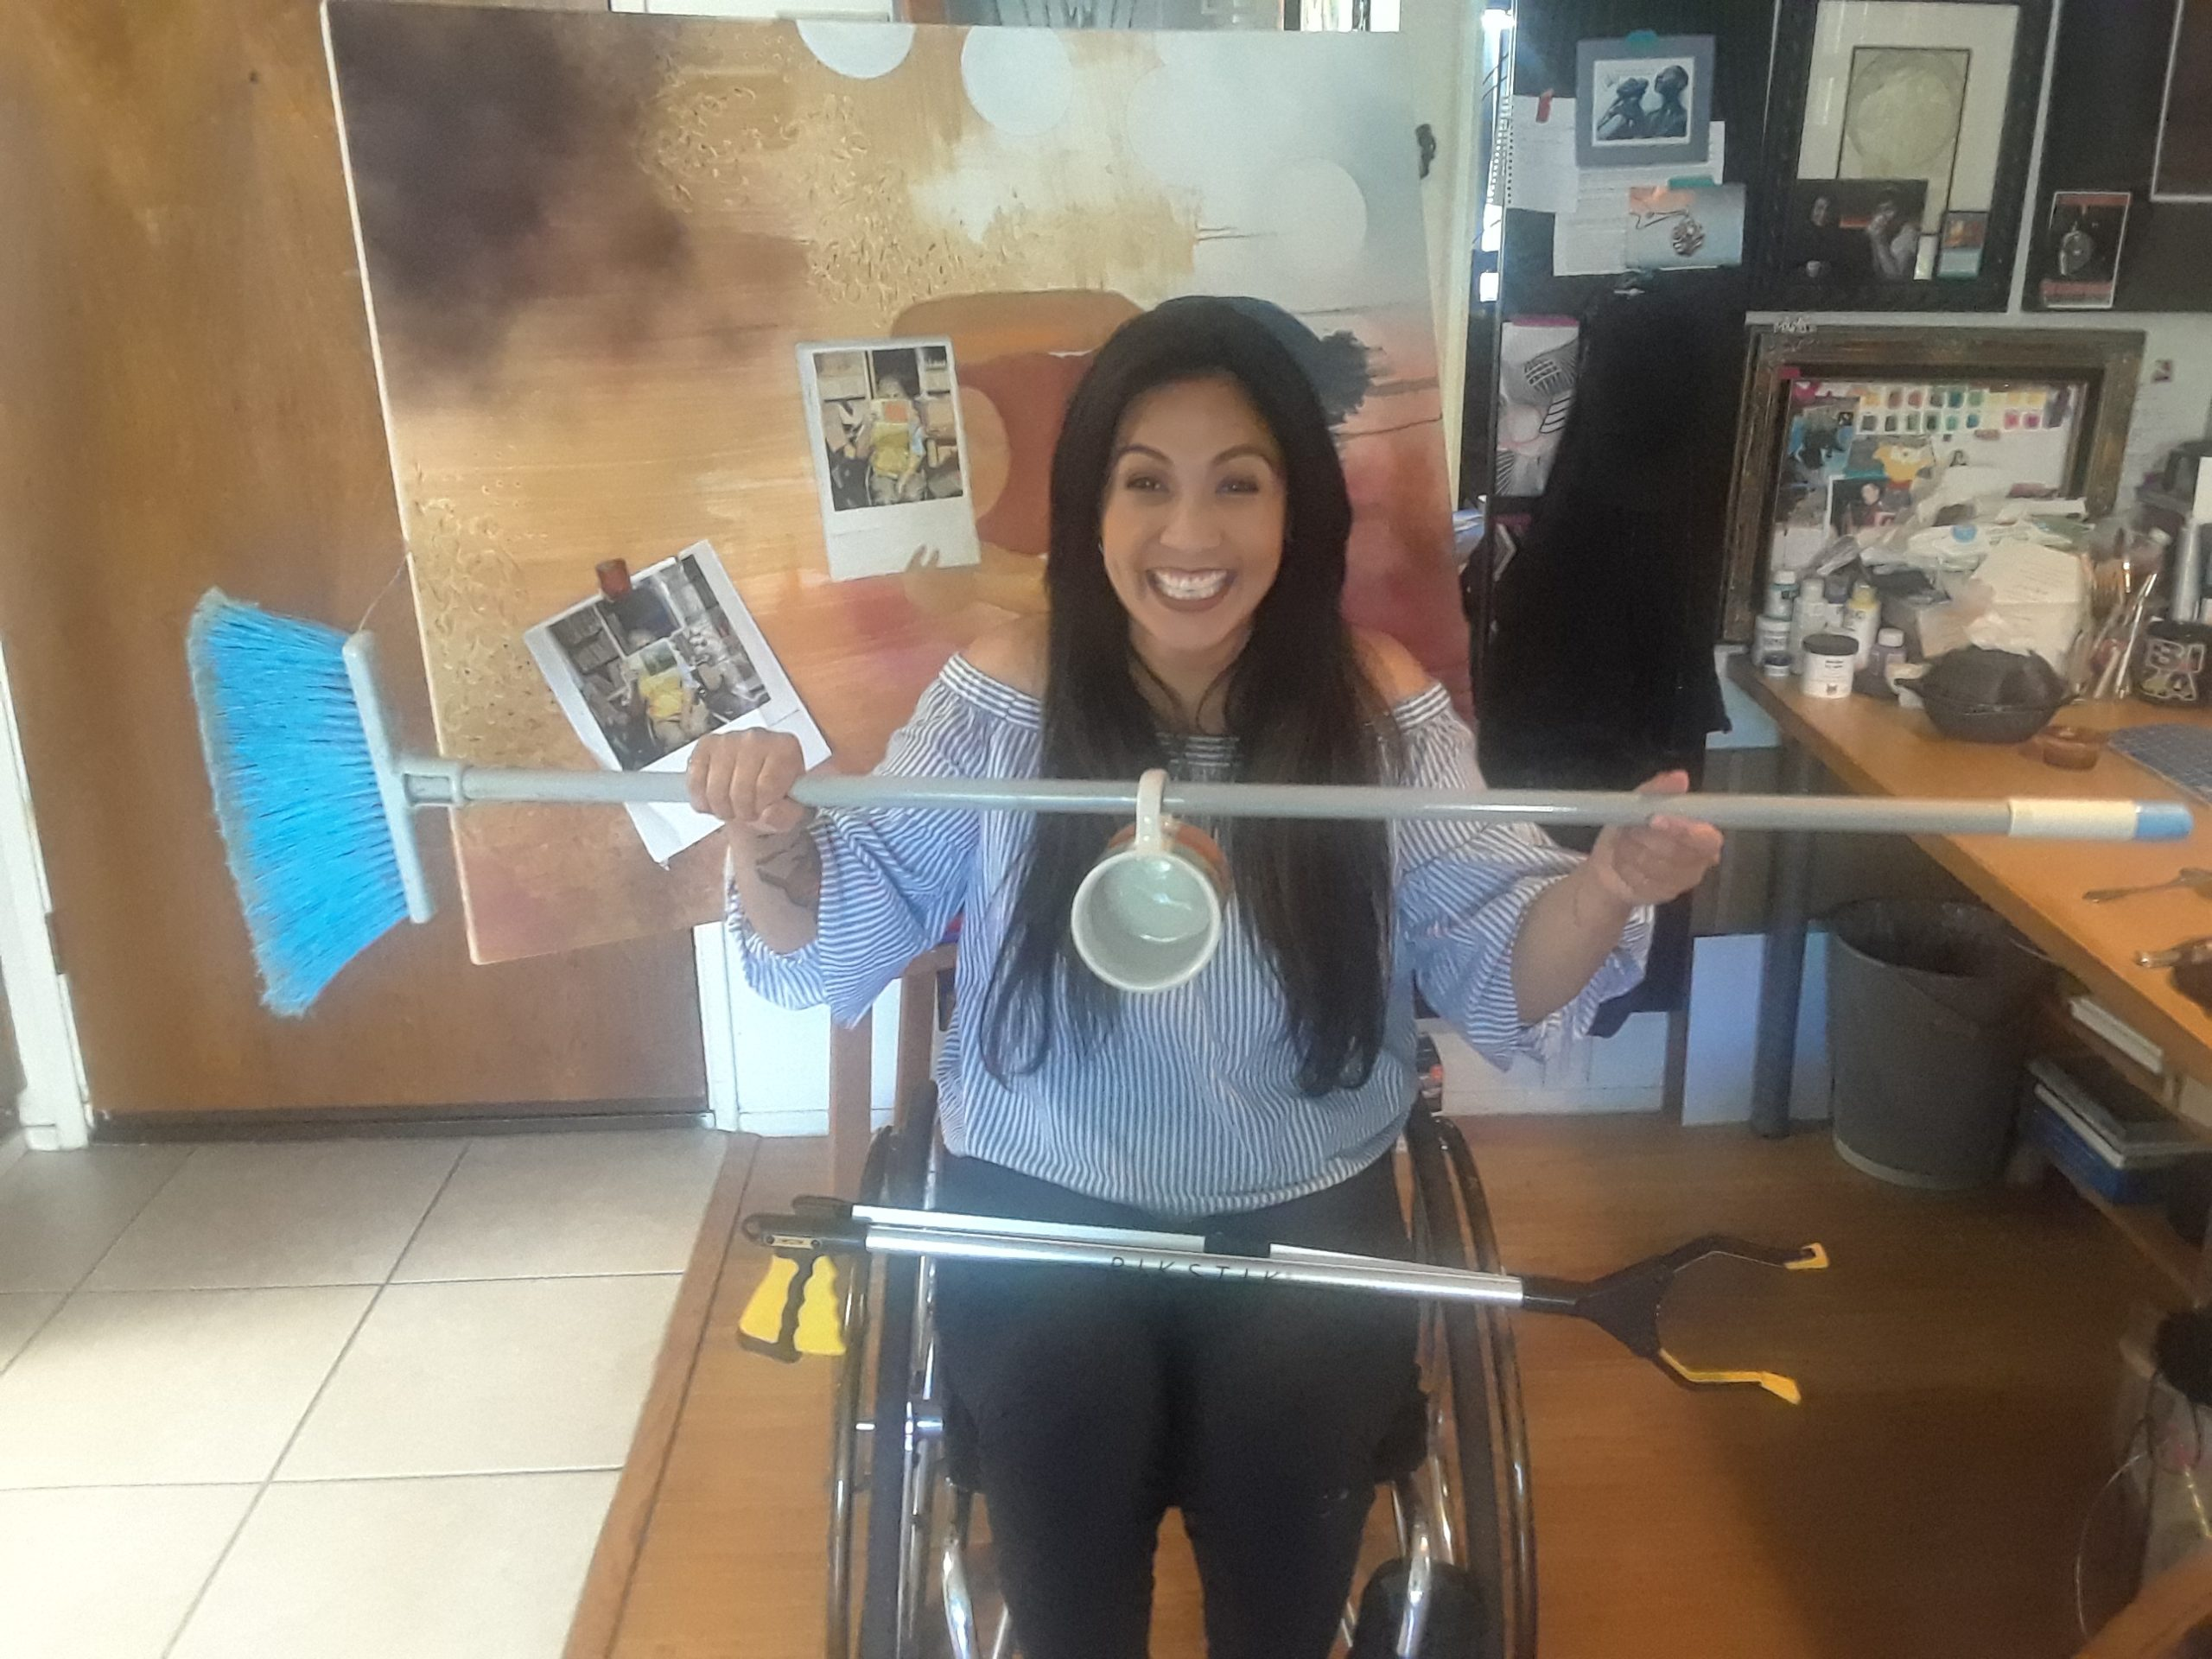 Hydred Makabali in her wheelchair holding a broom with a mug hanging from the stick.